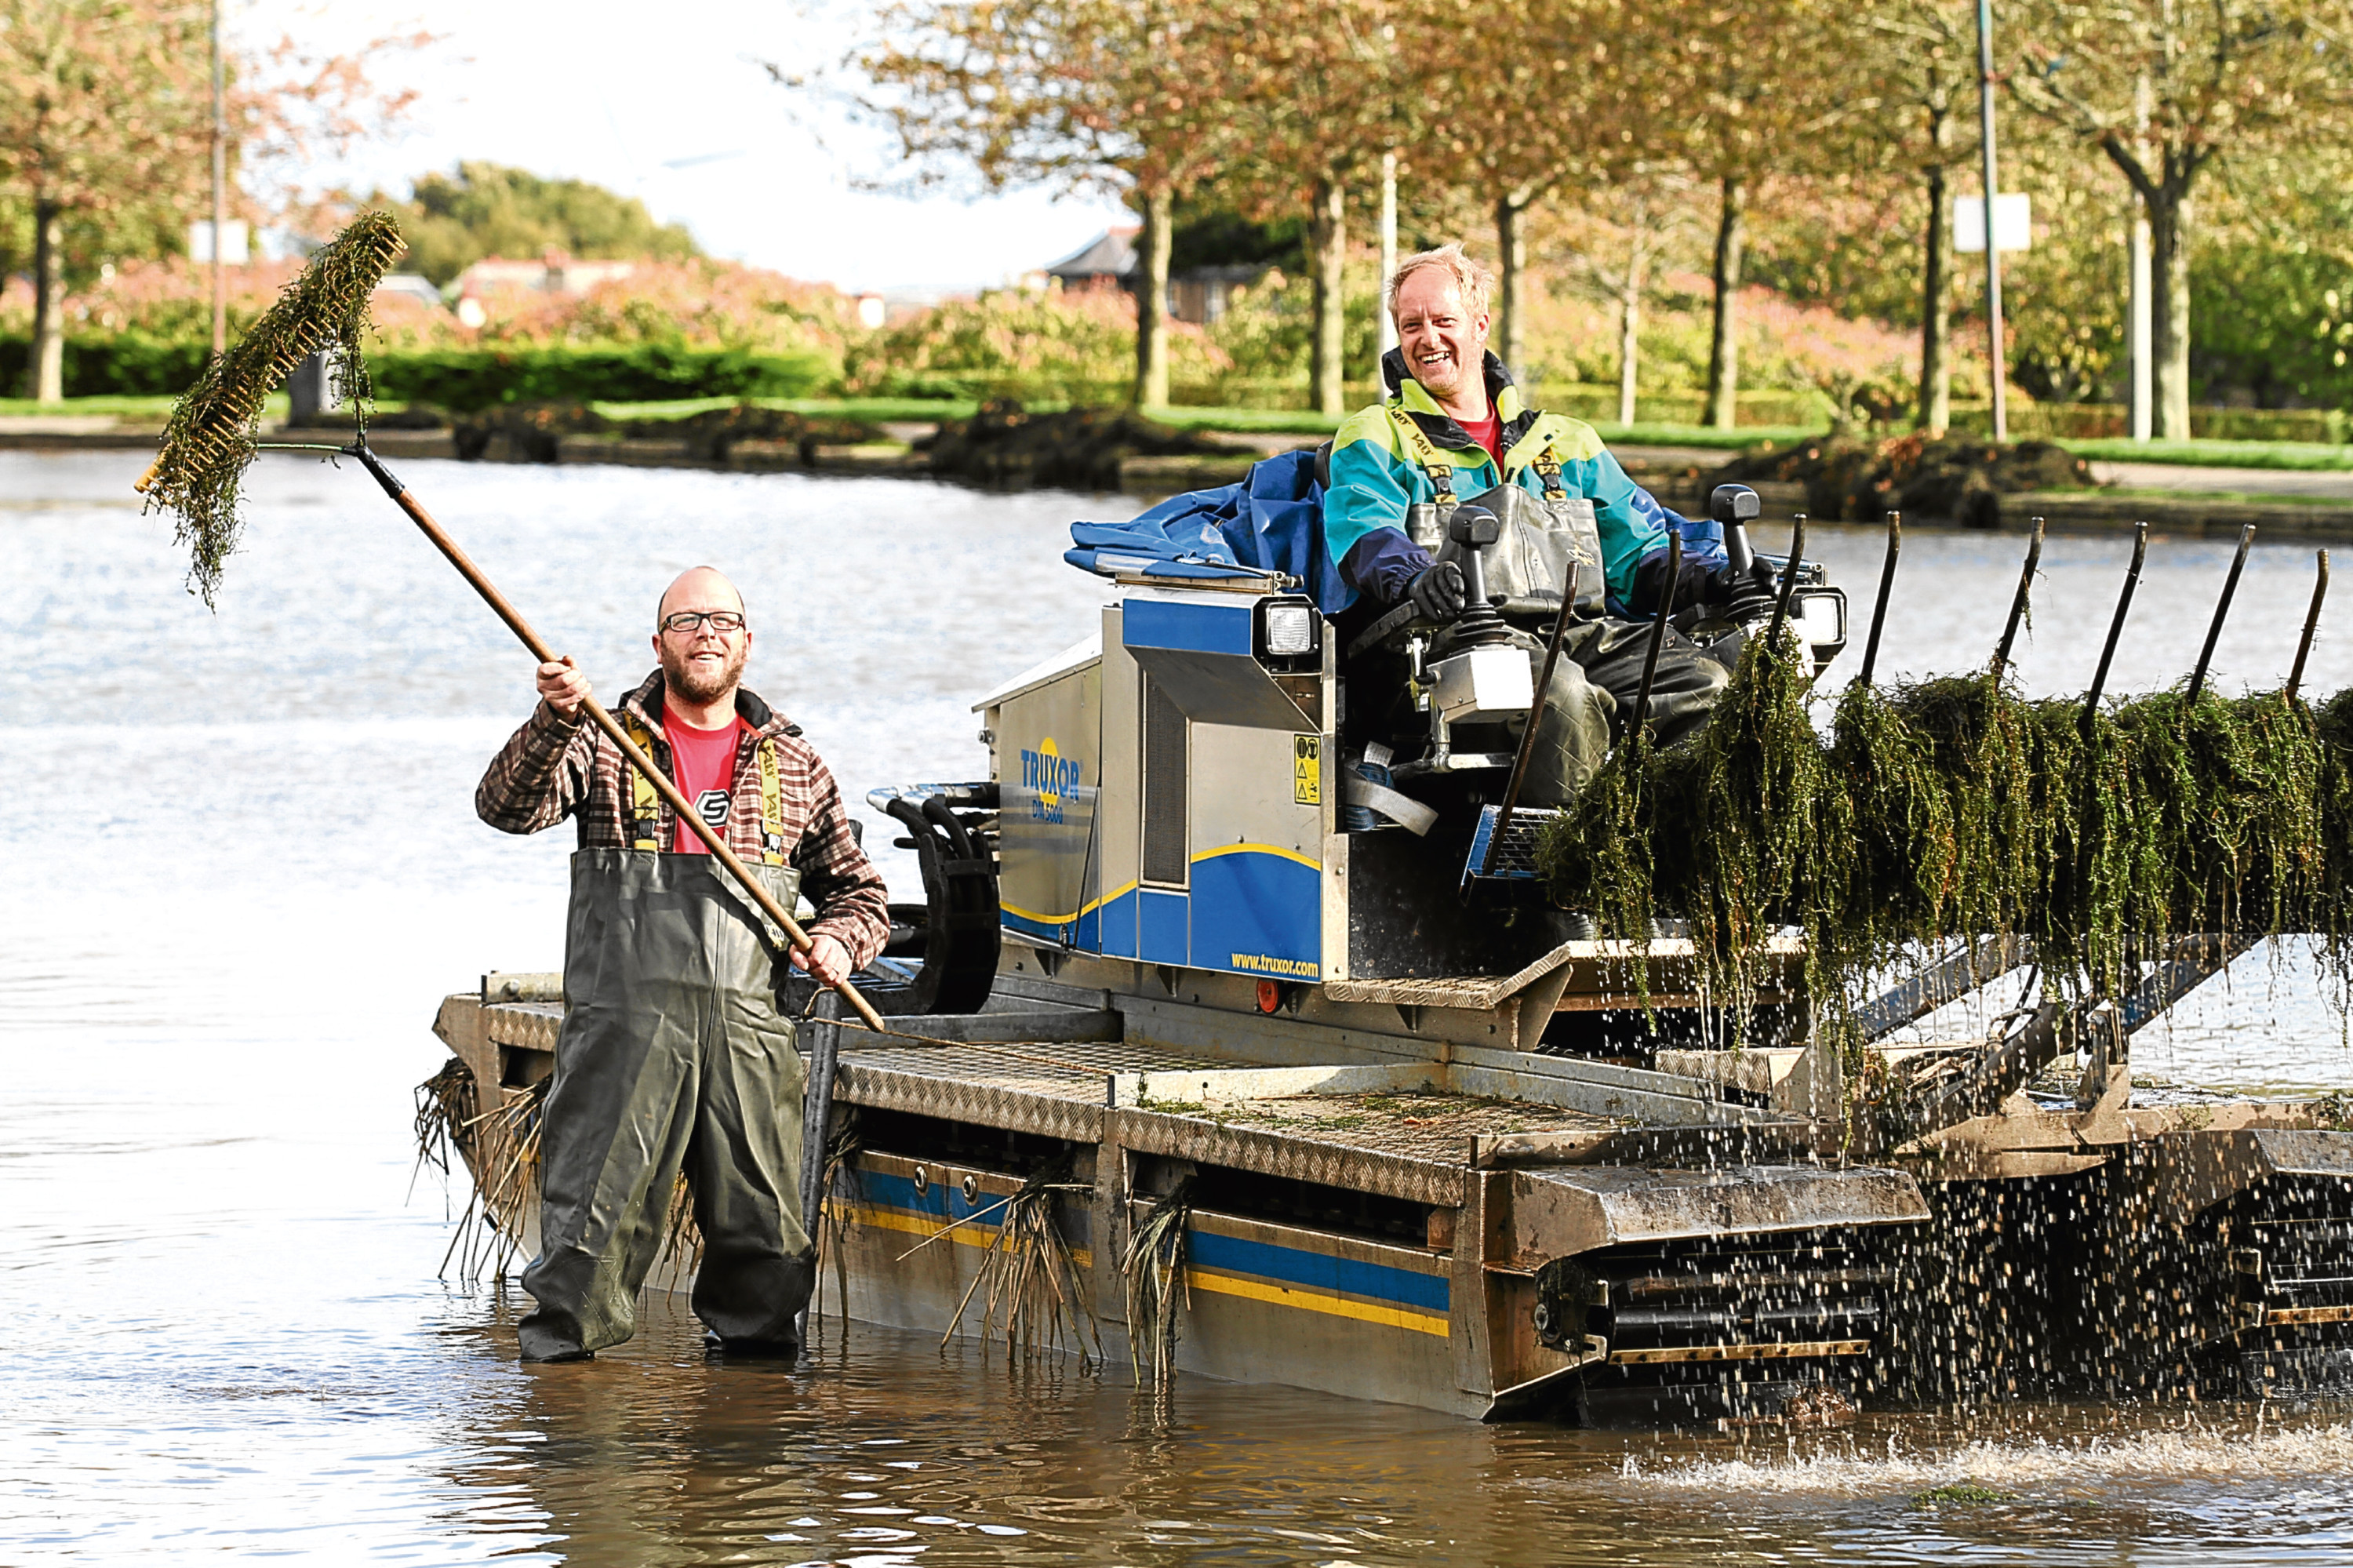 Operations manager Alan Smith and enviromental engineer Derrick Emms at work clearing red algae from Dundee's Swannie Ponds.